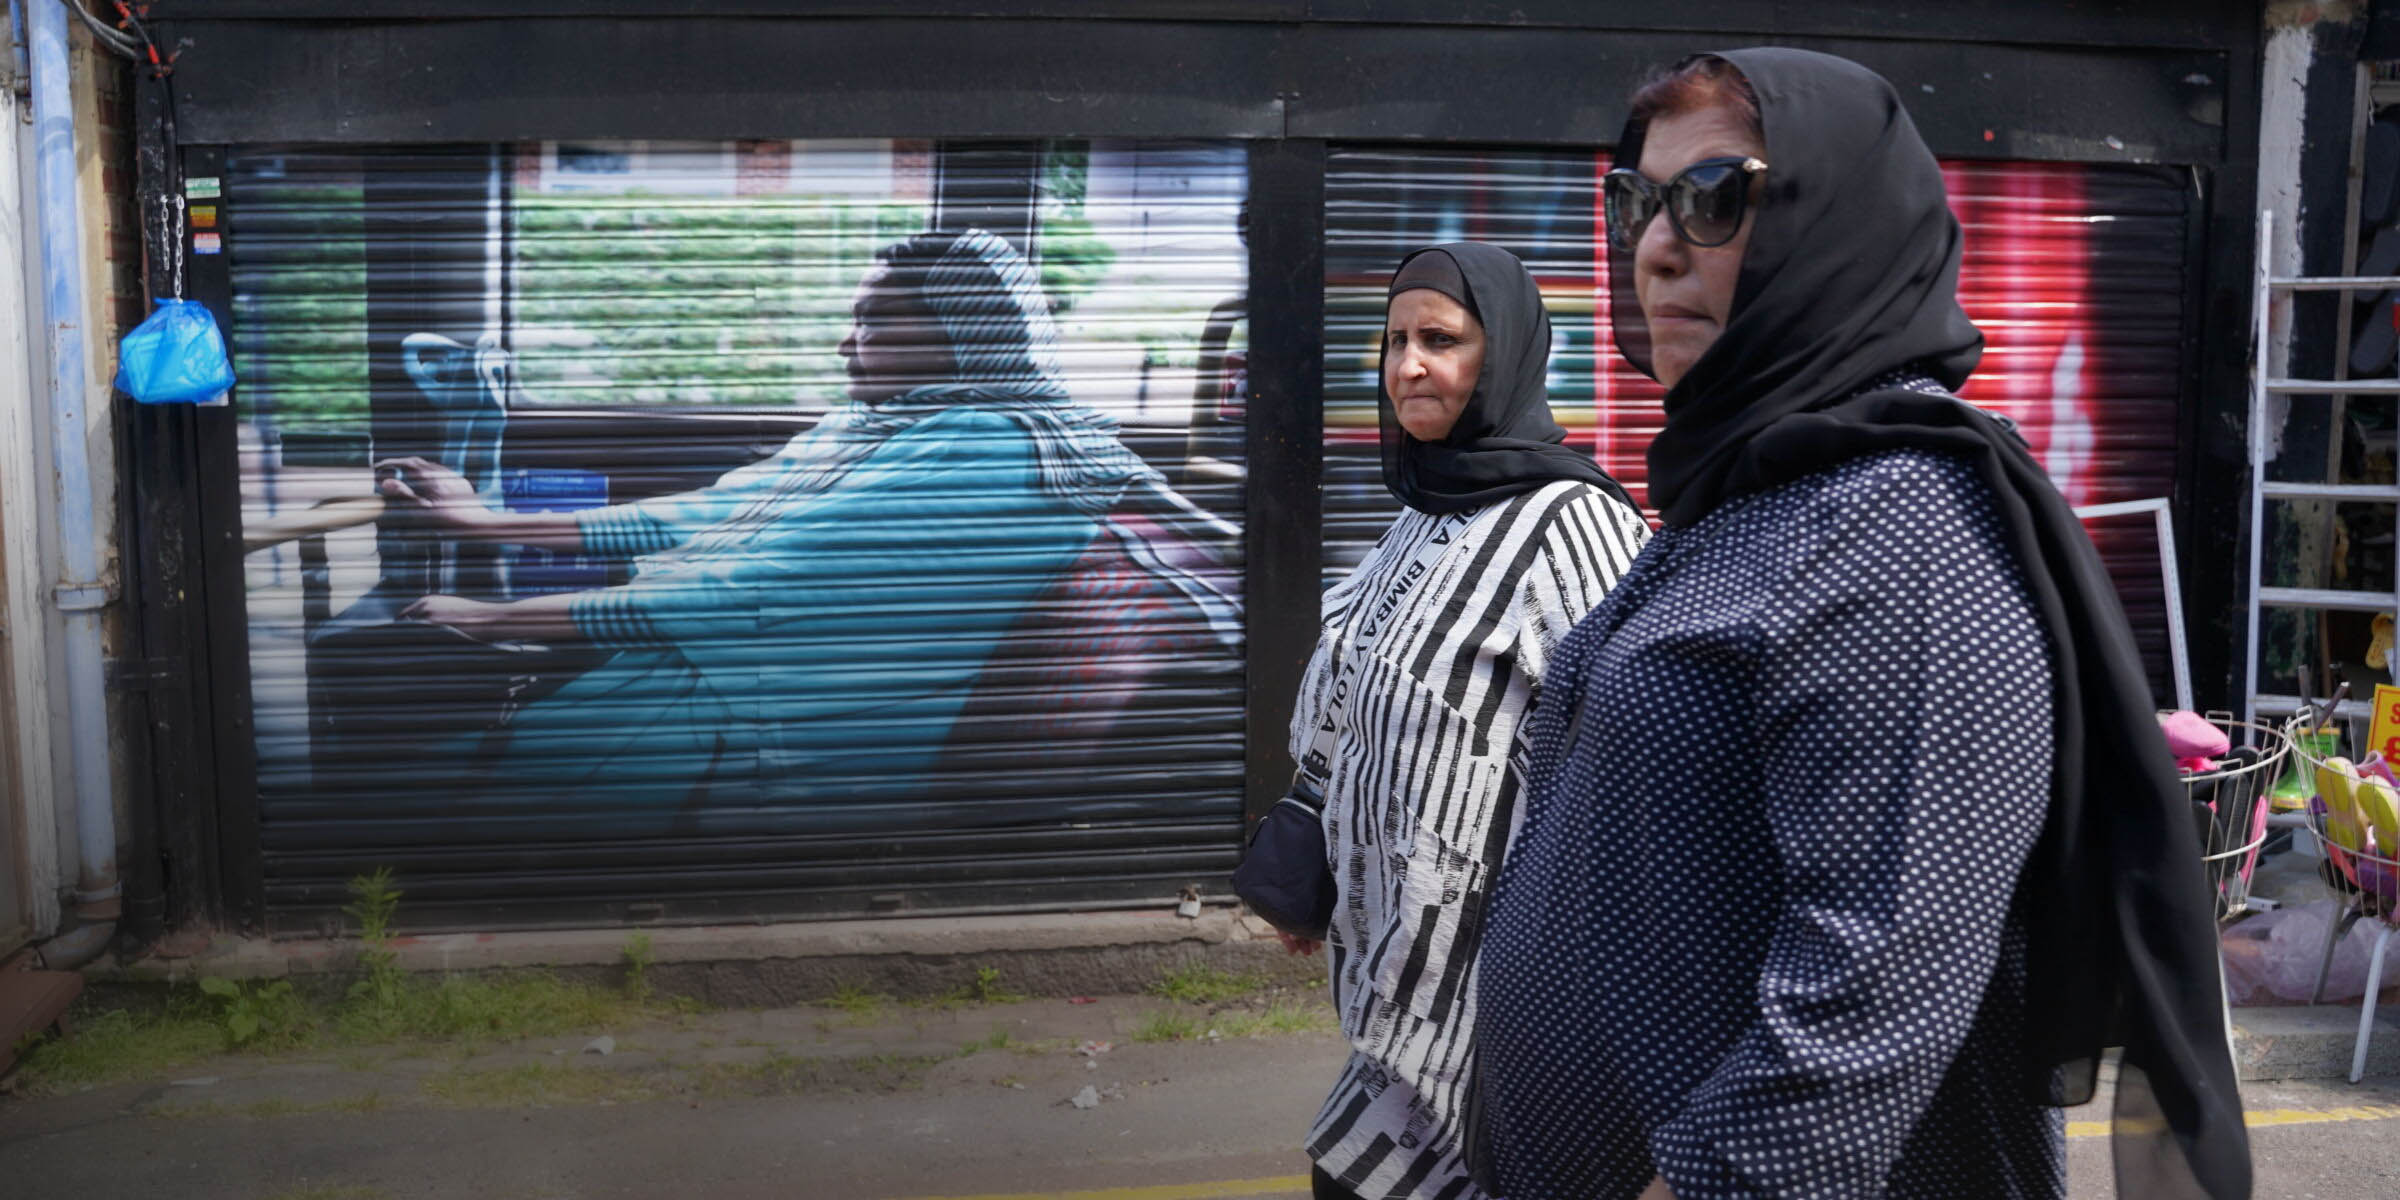 Two women pass in front of a mural on shop shutters